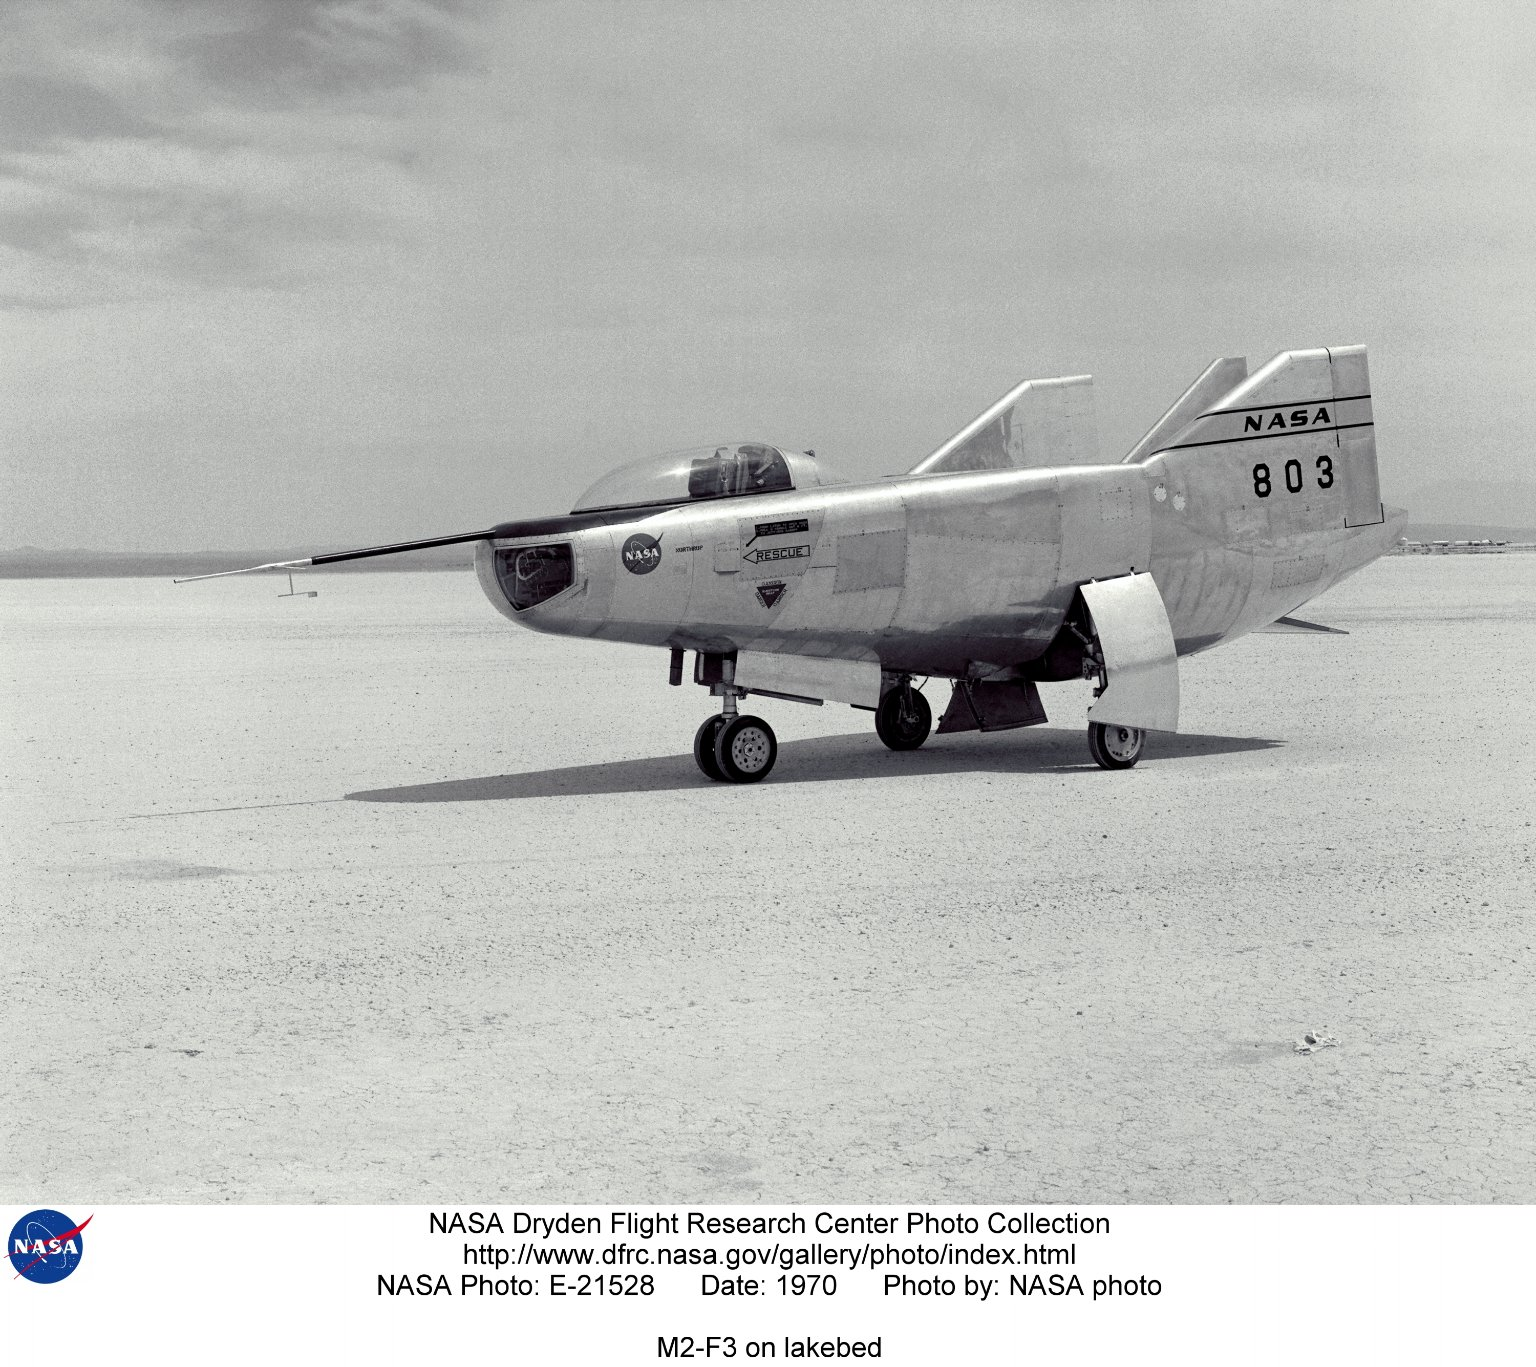 M2-F3 on lakebed